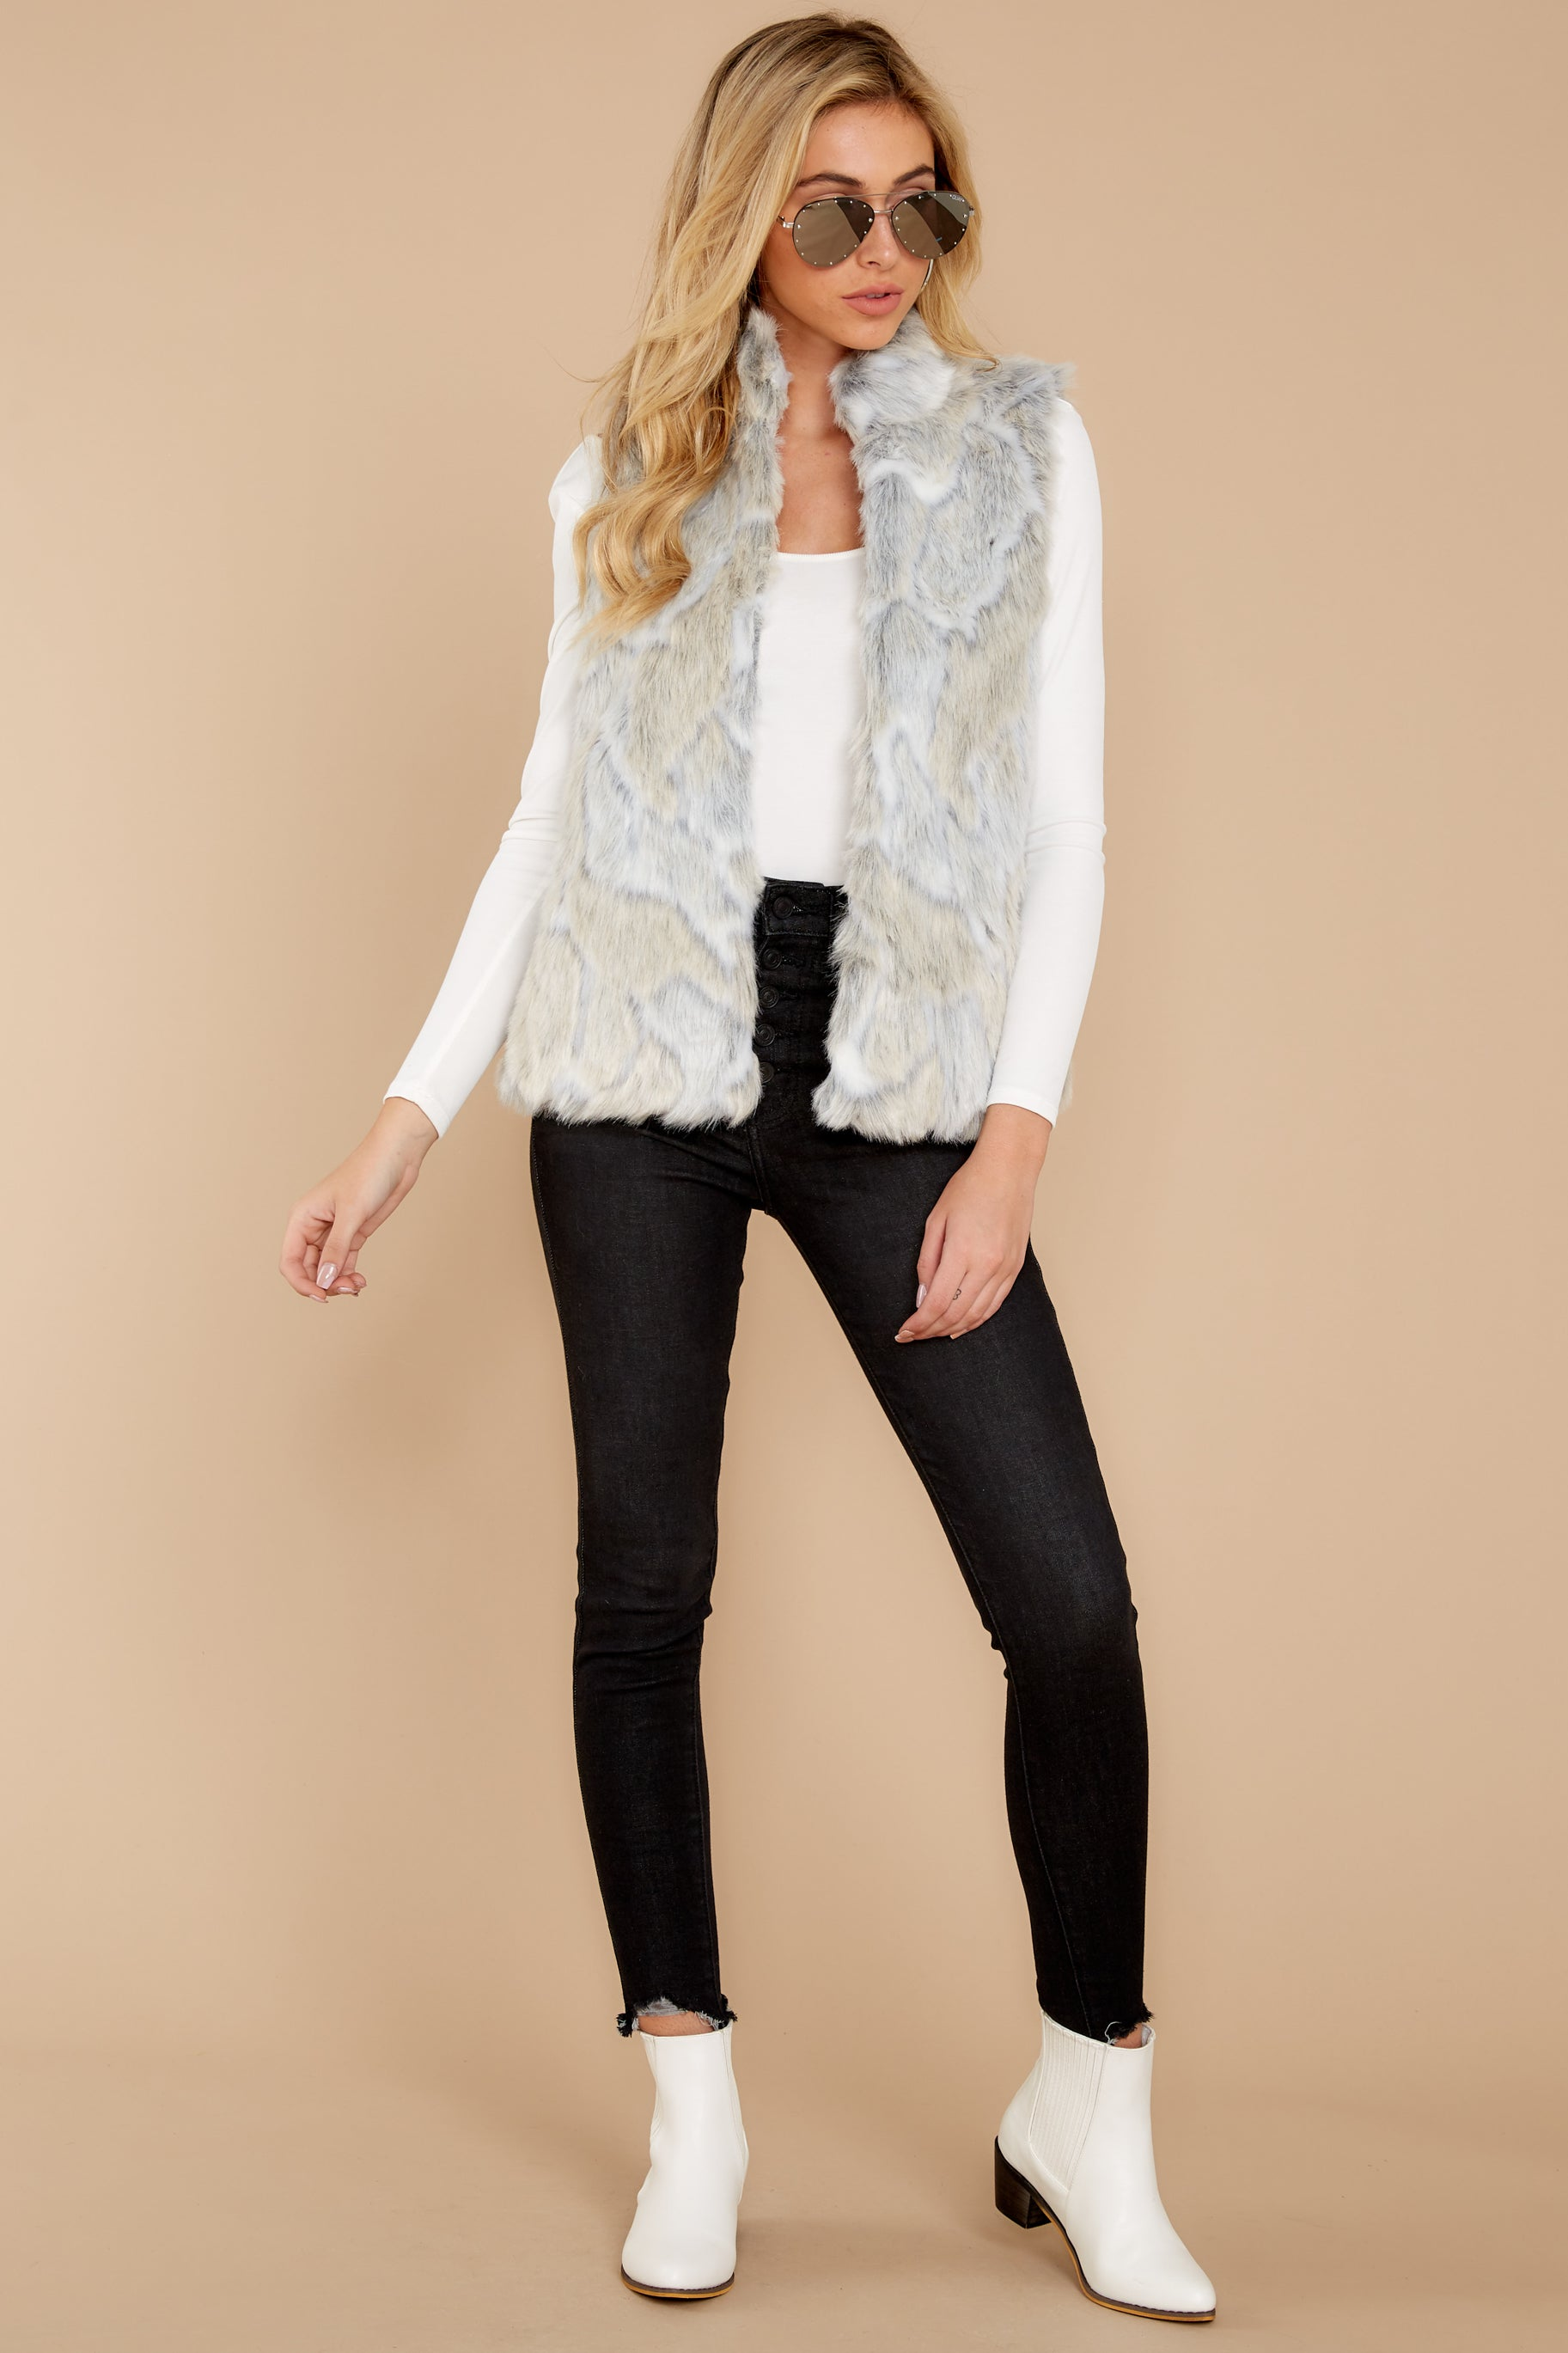 Blame It On Me Light Grey Vegan Fur Vest